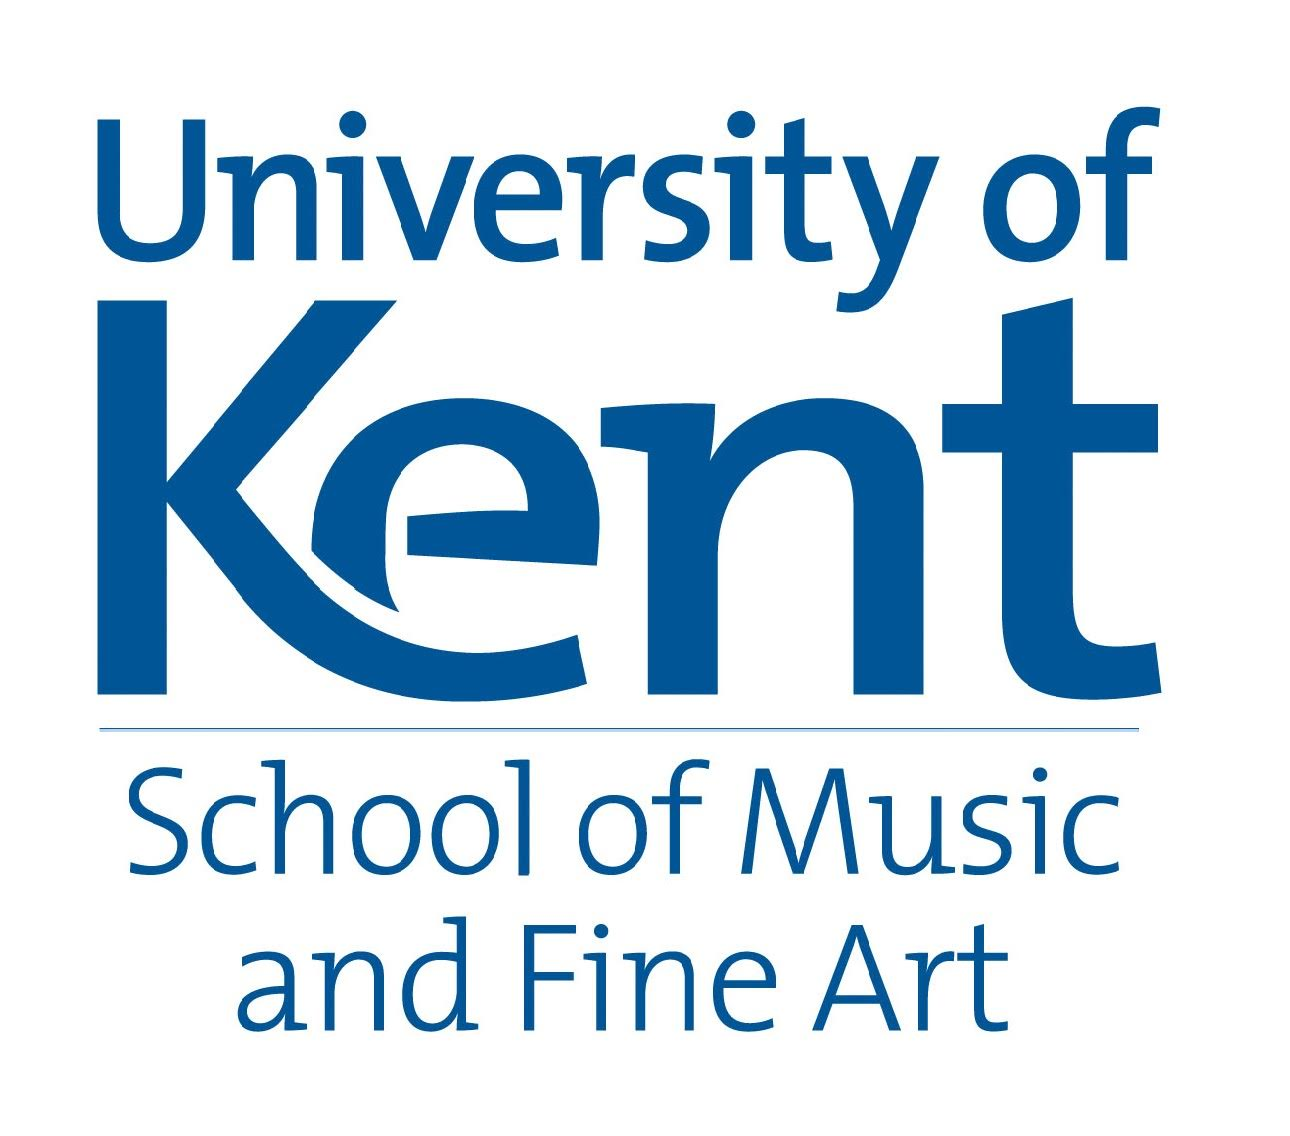 University of Kent School of Music and Fine Art